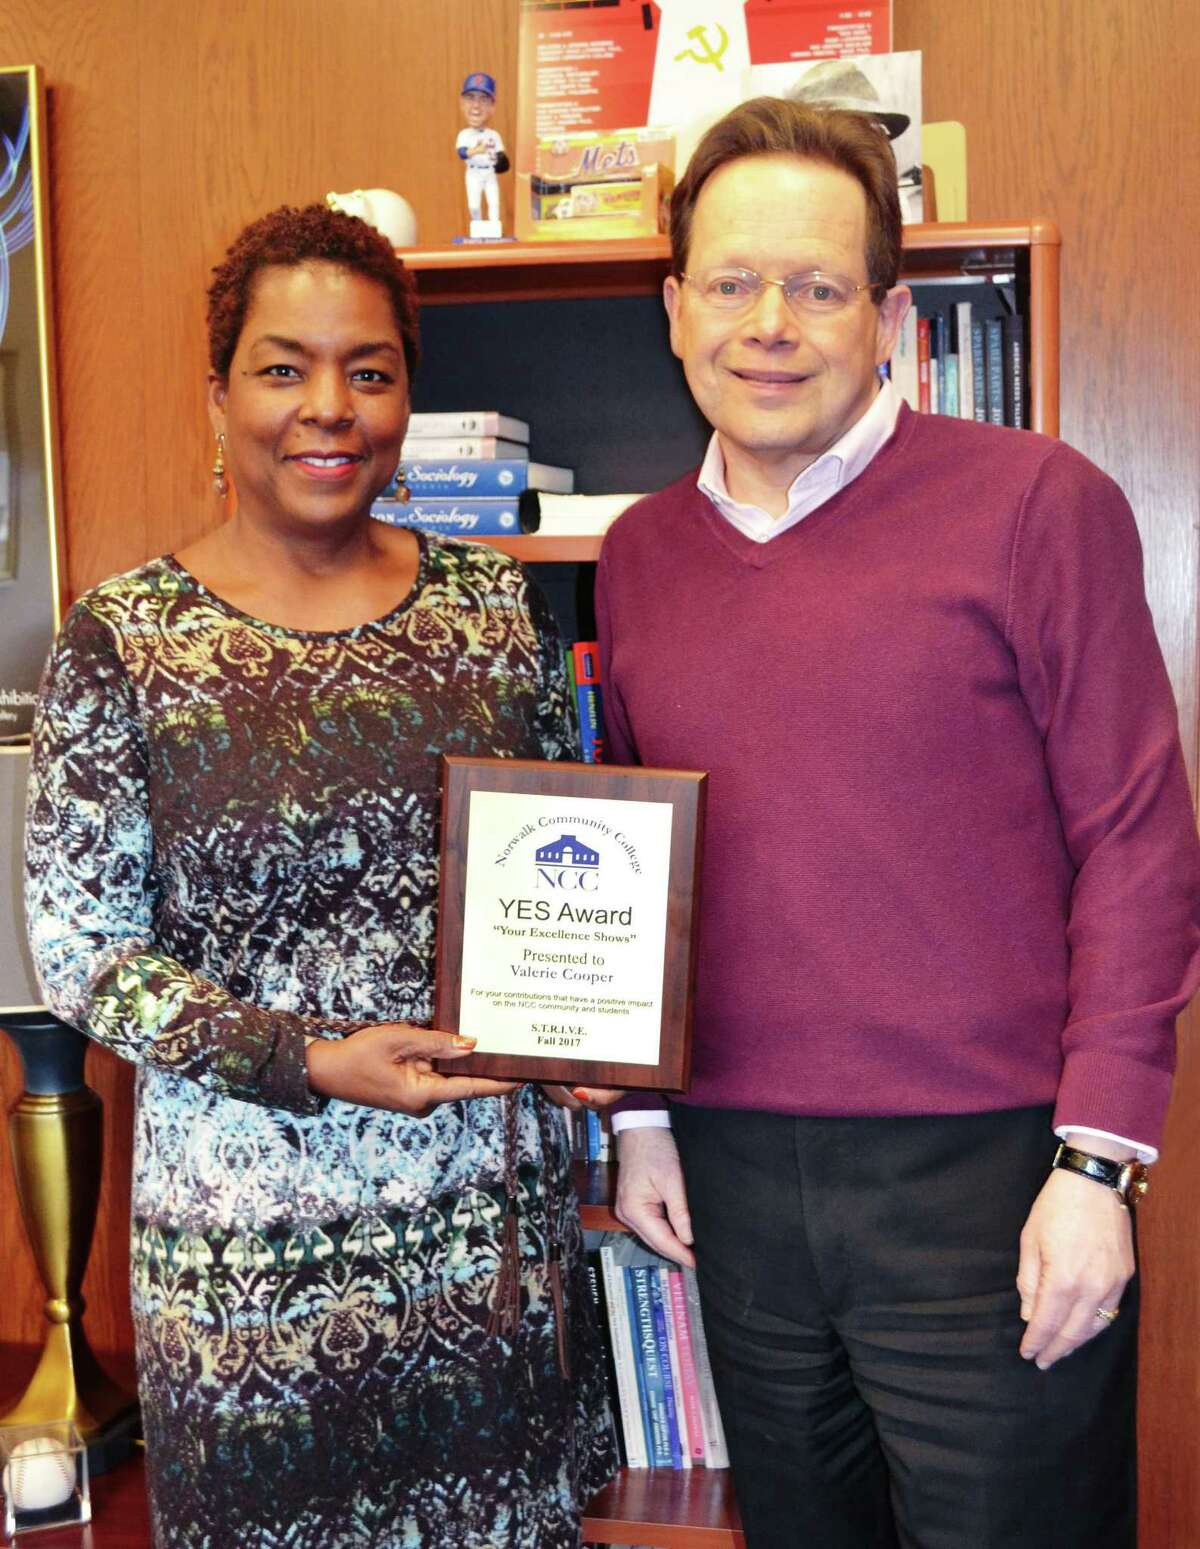 Pictured is one of the four YES Award winners Valerie Cooper (left) and NCC President David L. Levinson, Ph.D. Other winners included Andrea Pizone, Harold Winston and Diane Donovan.